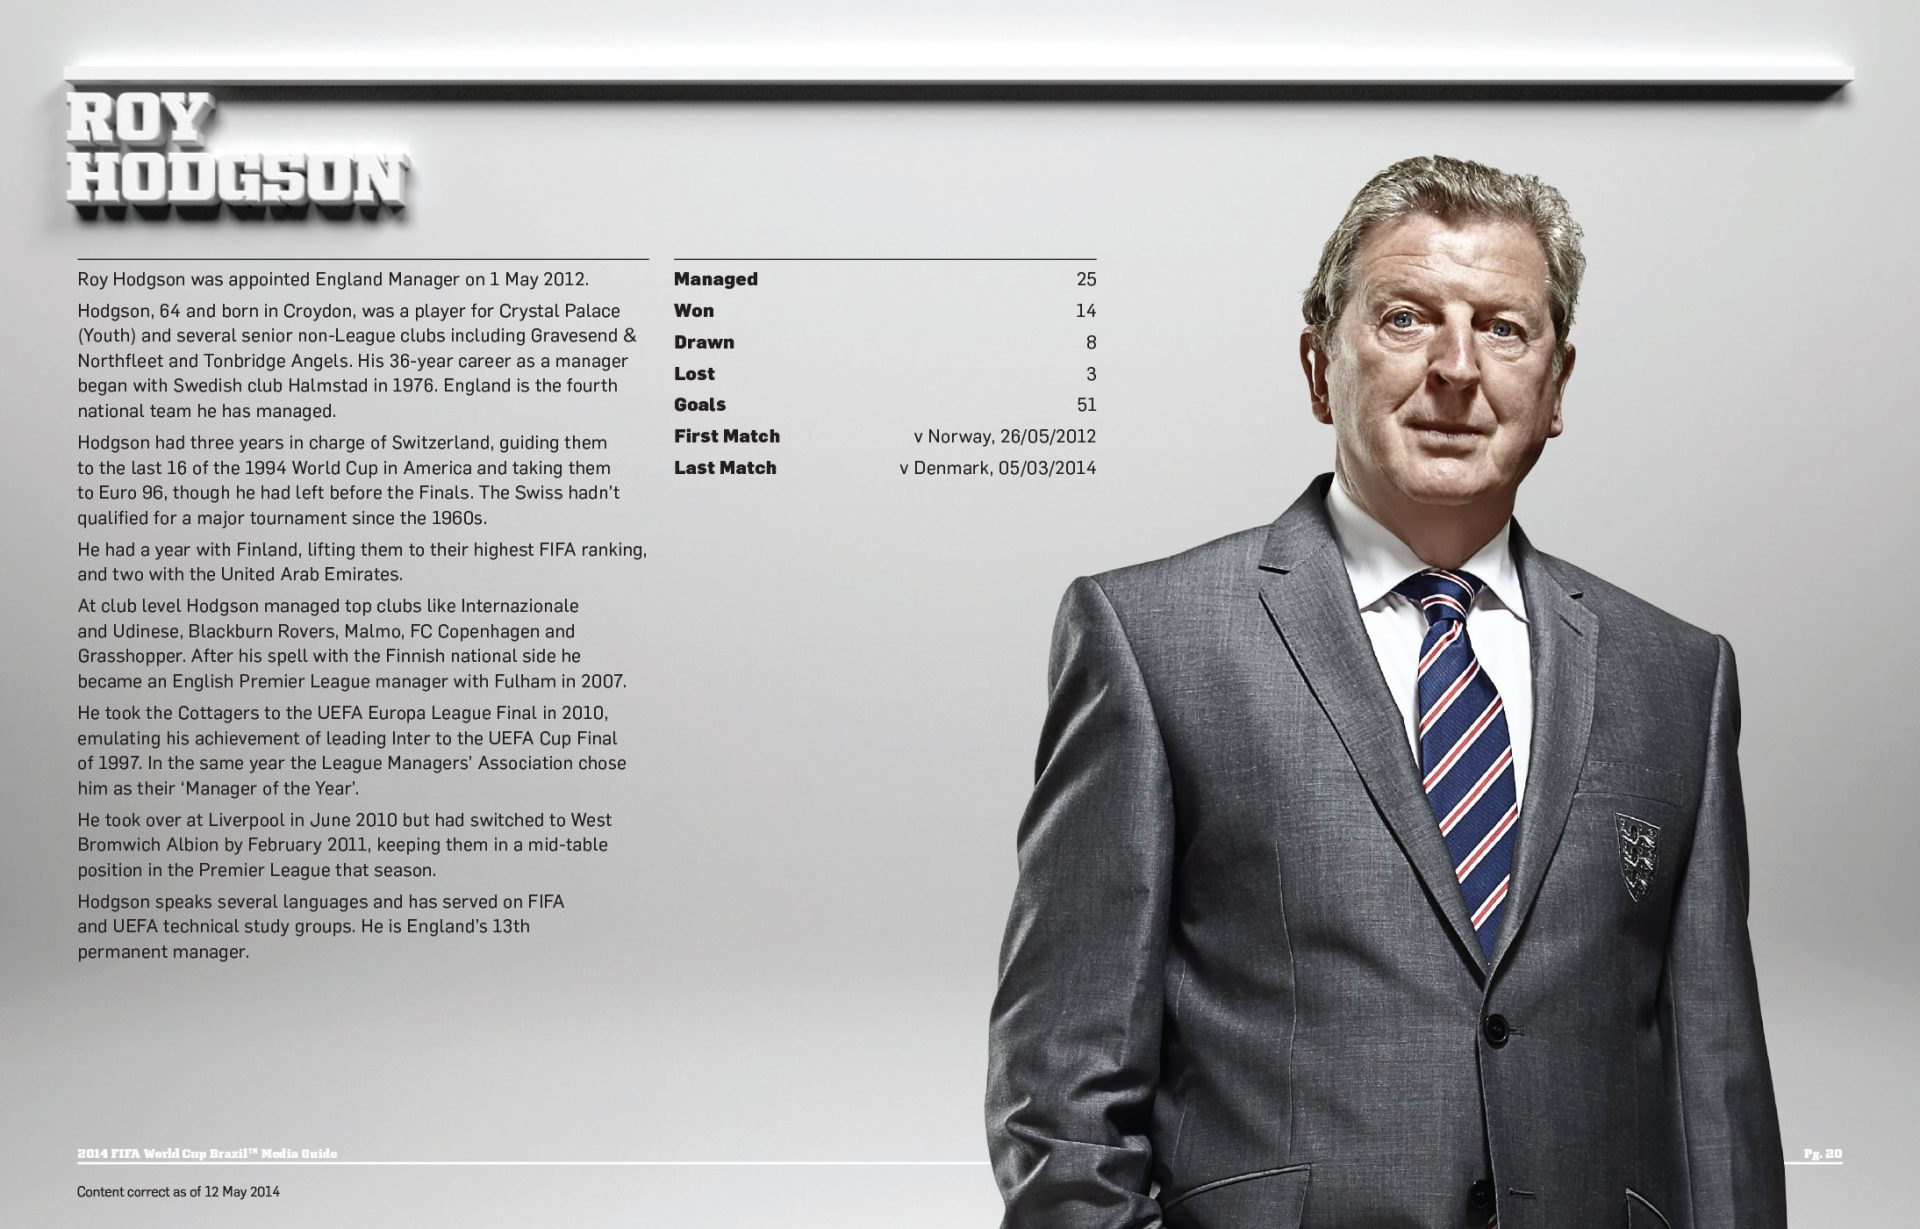 7967_World Cup Media Guide_v10_MID hires_Screen-1